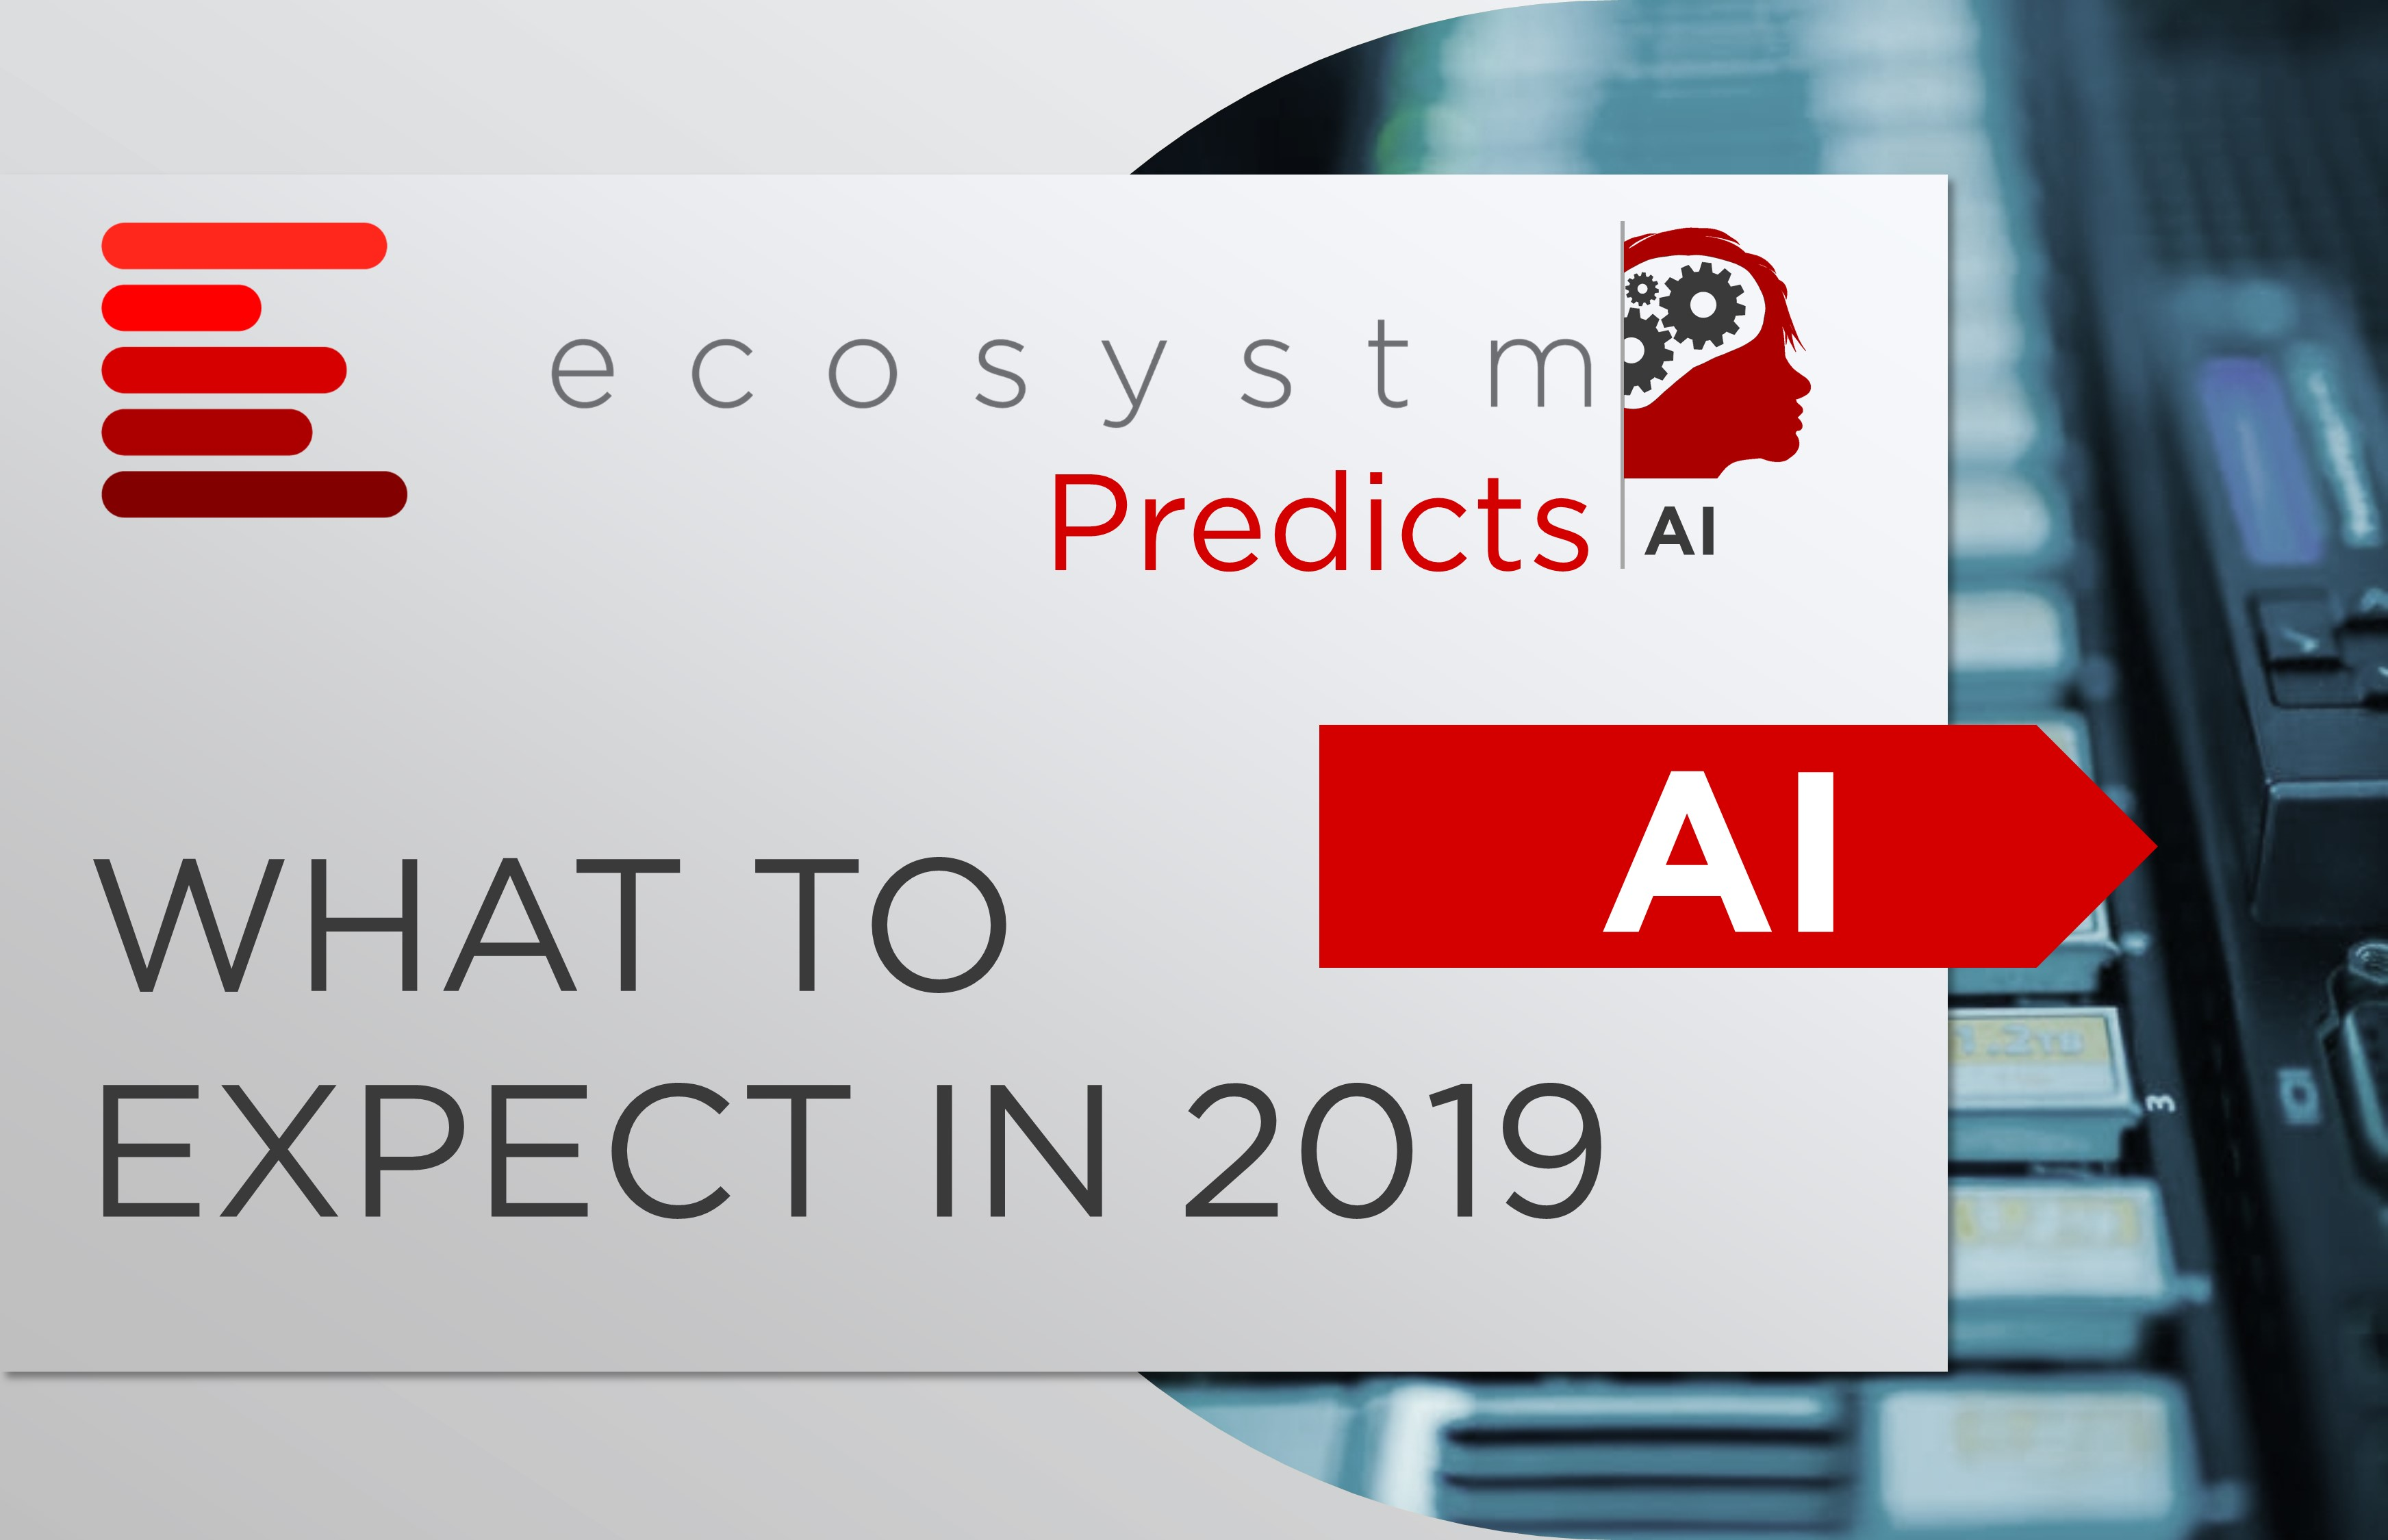 Ecosystm Predicts AI